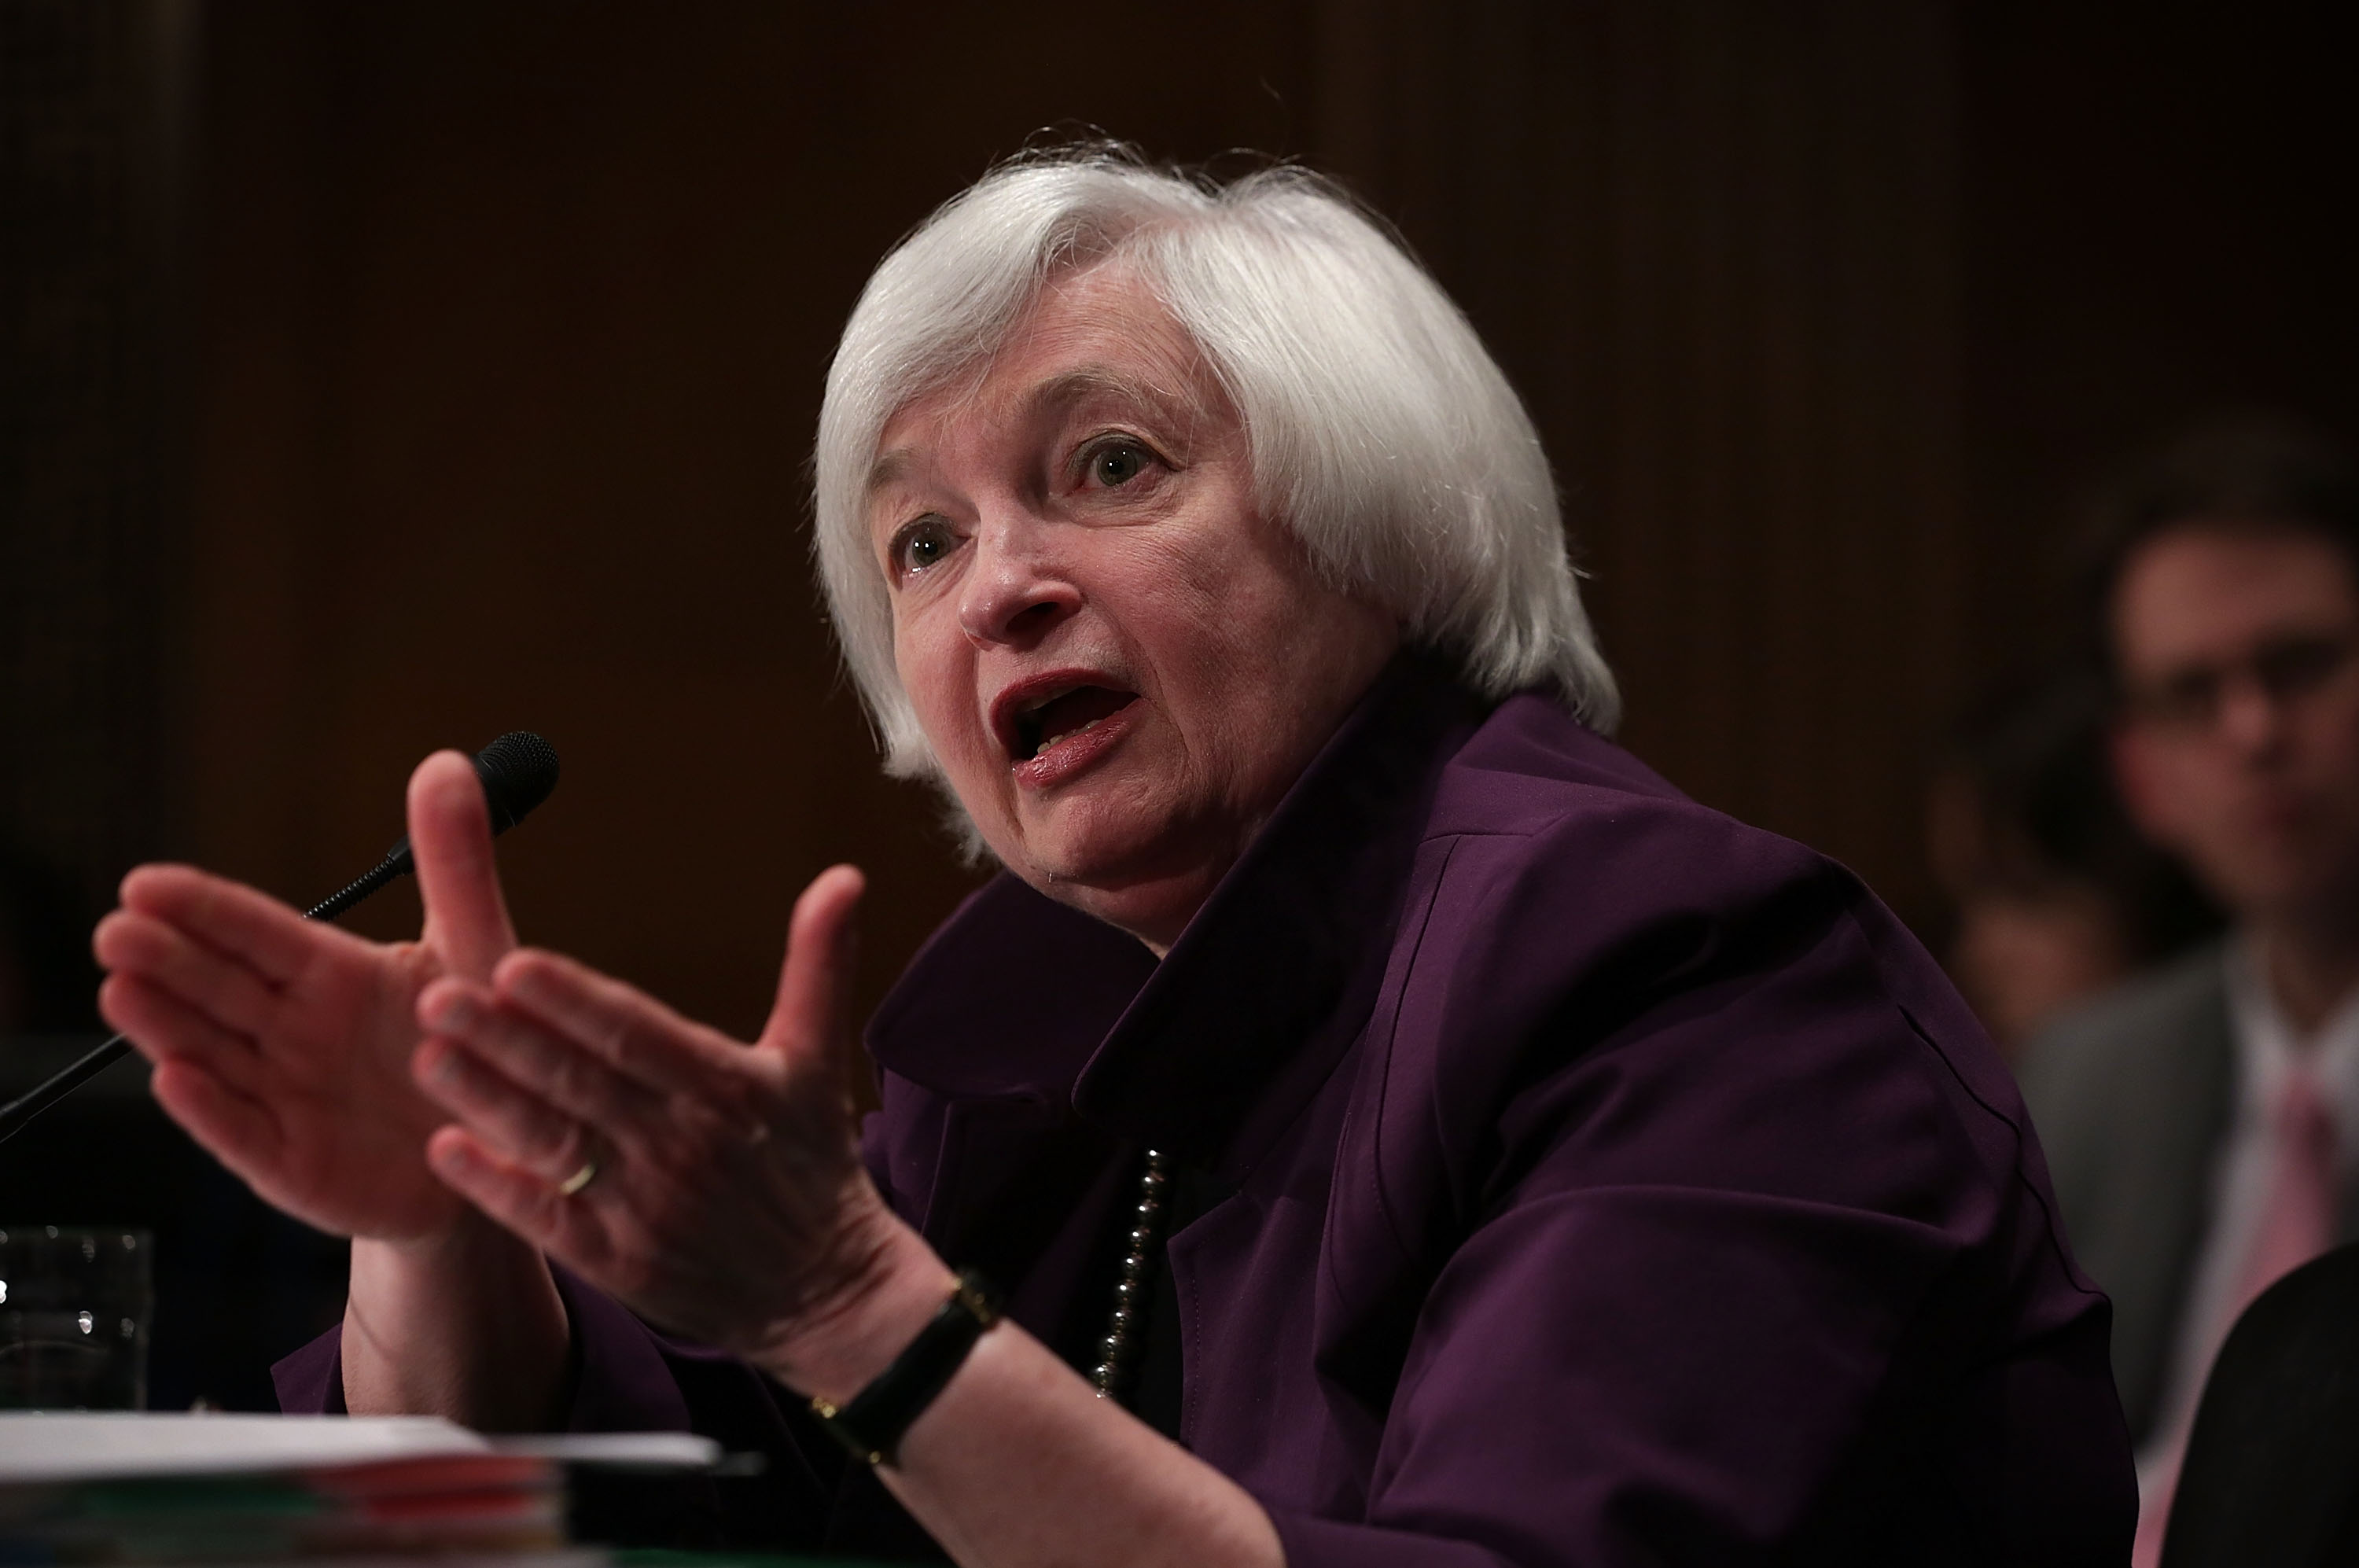 Janet Yellen Presents Semiannual Monetary Policy Report At Senate Hearing